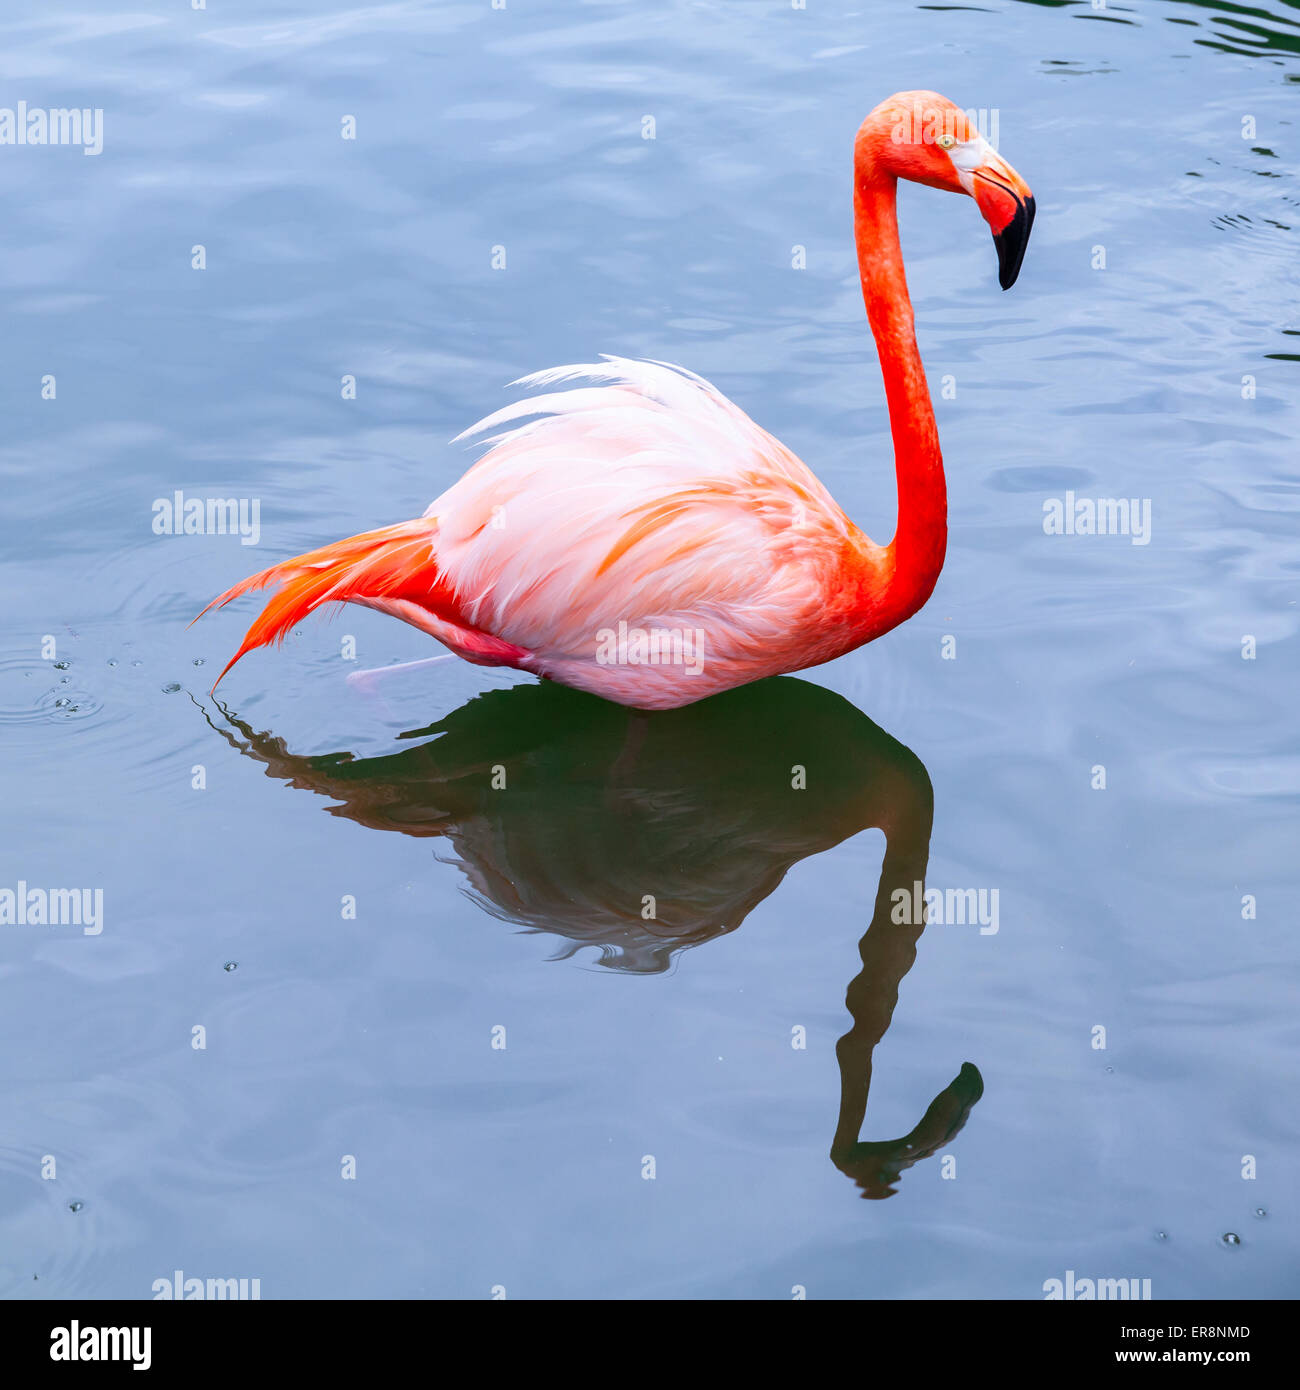 Pink flamingo walks in the water with reflections, square photo - Stock Image